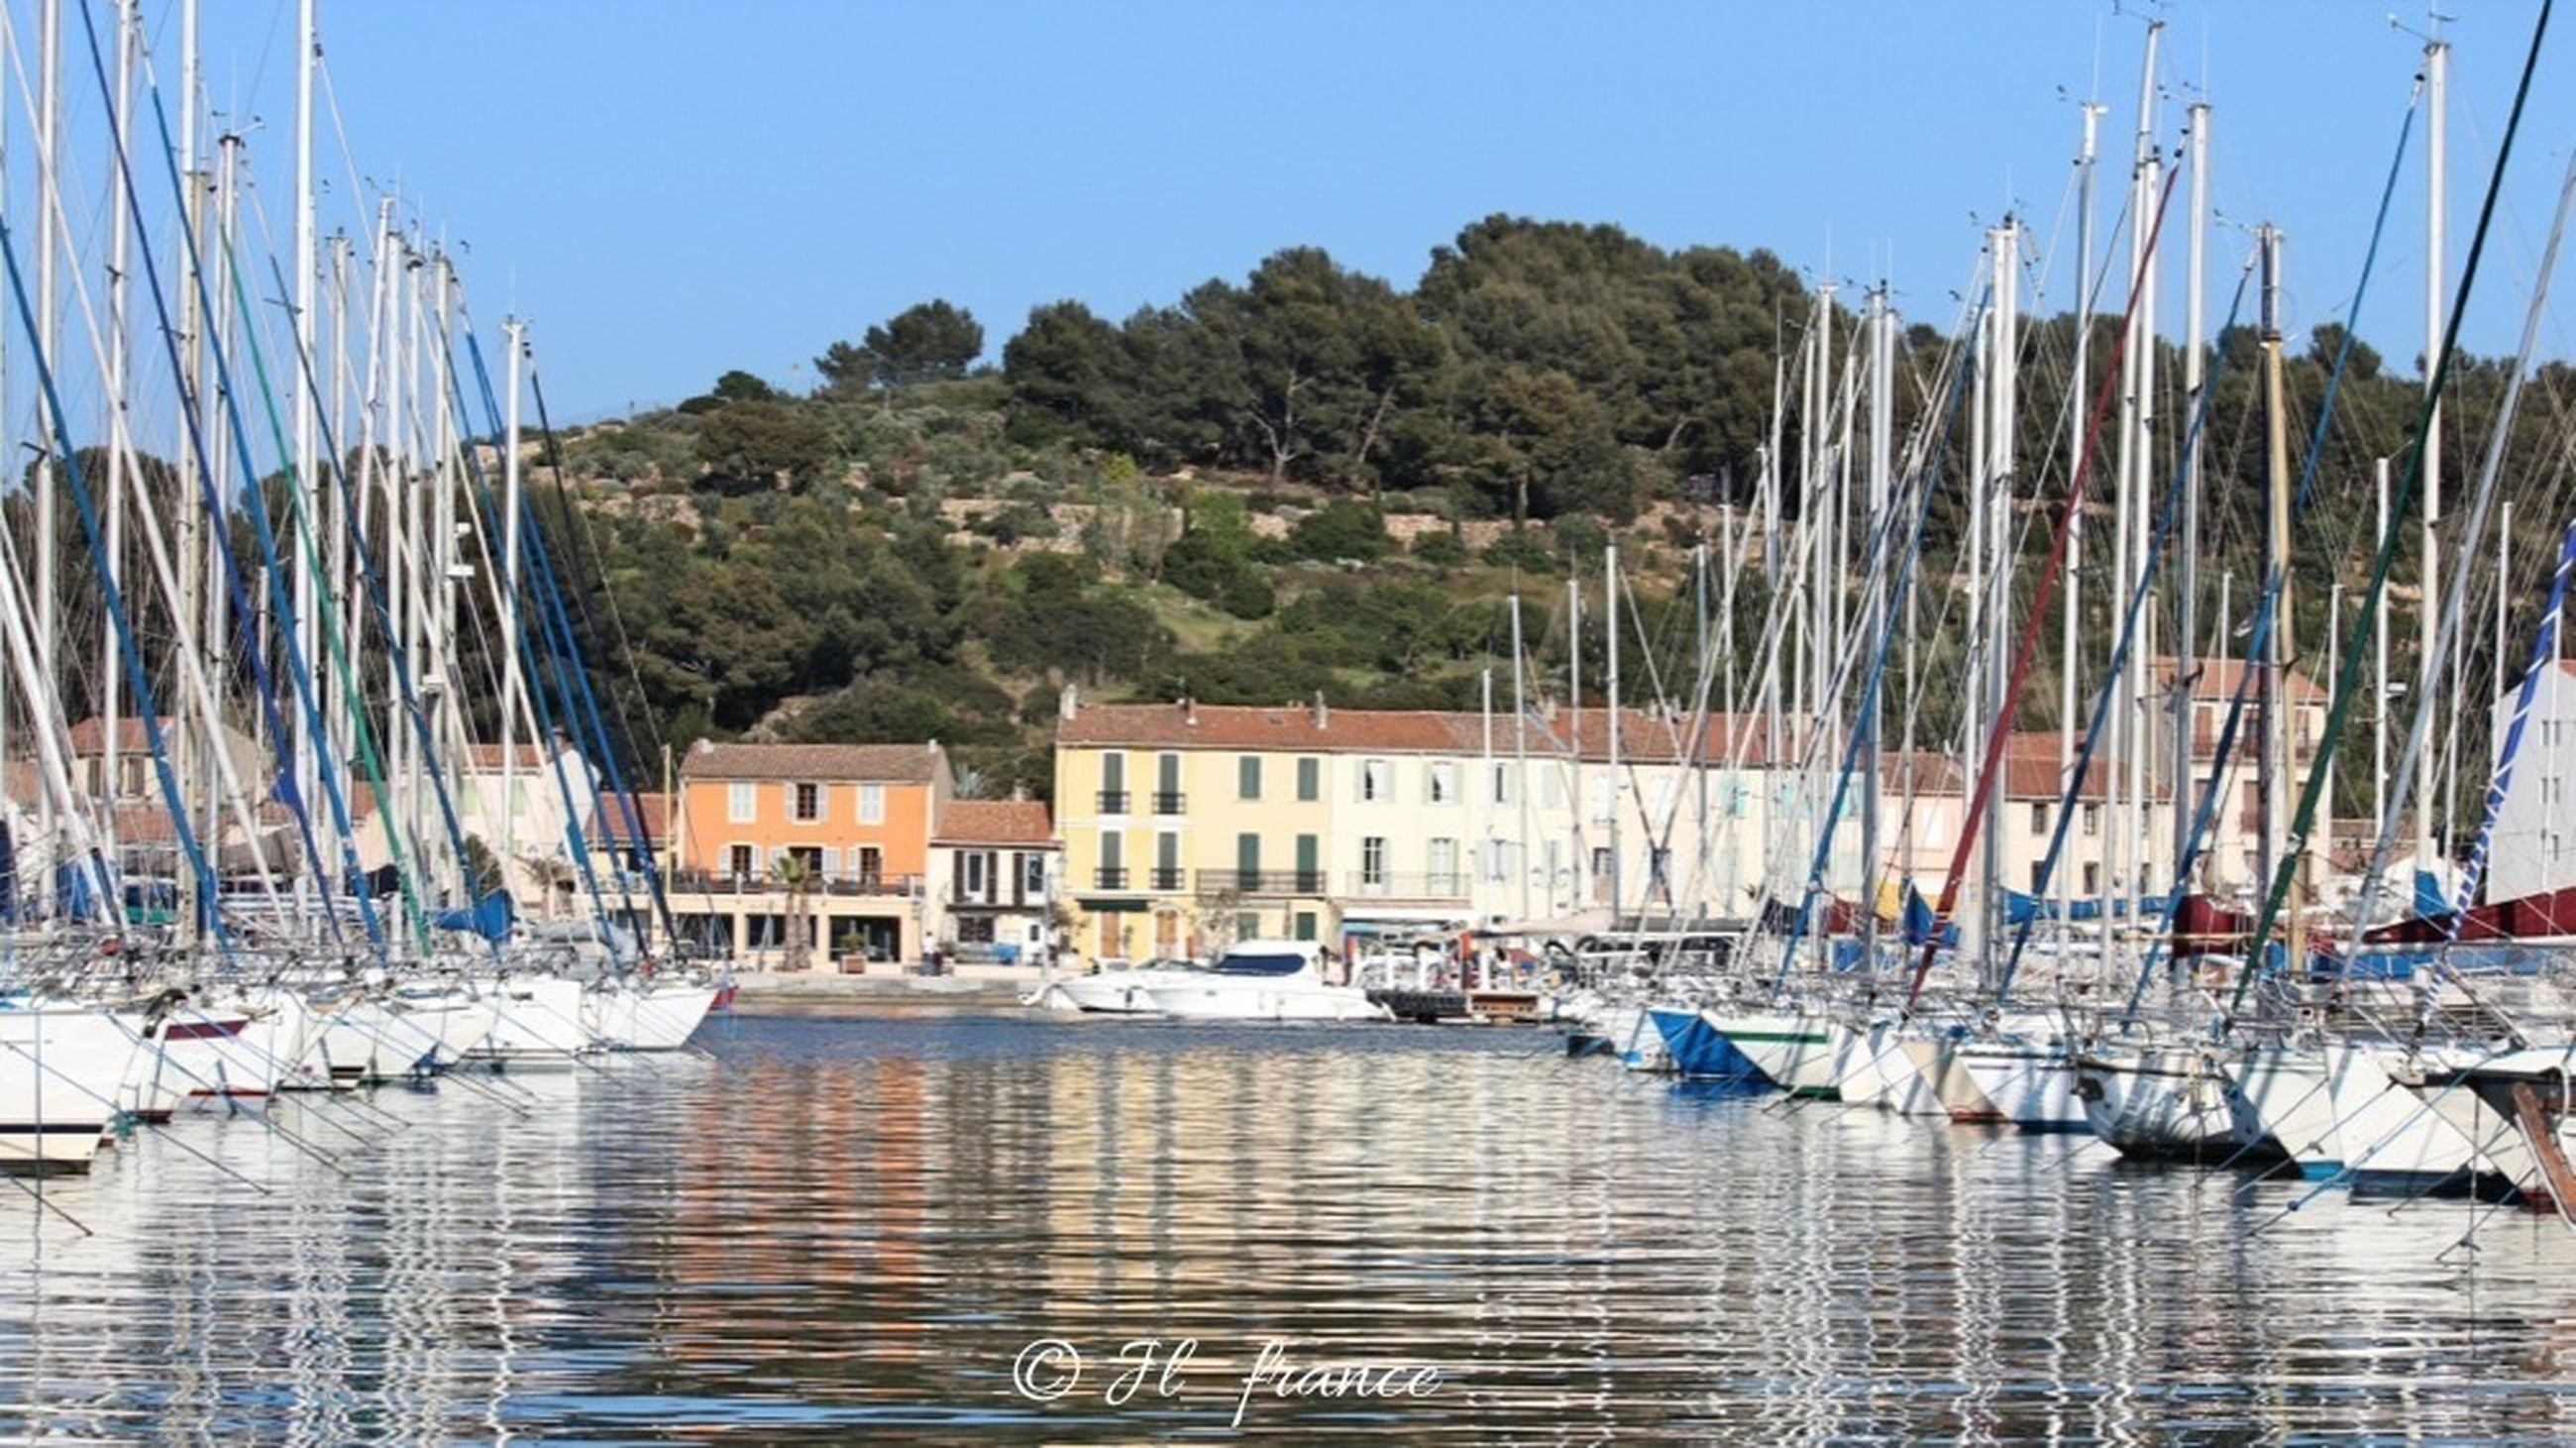 water, nautical vessel, moored, waterfront, harbor, transportation, blue, built structure, building exterior, architecture, boat, in a row, reflection, mode of transport, sea, panoramic, palm tree, mast, day, sailboat